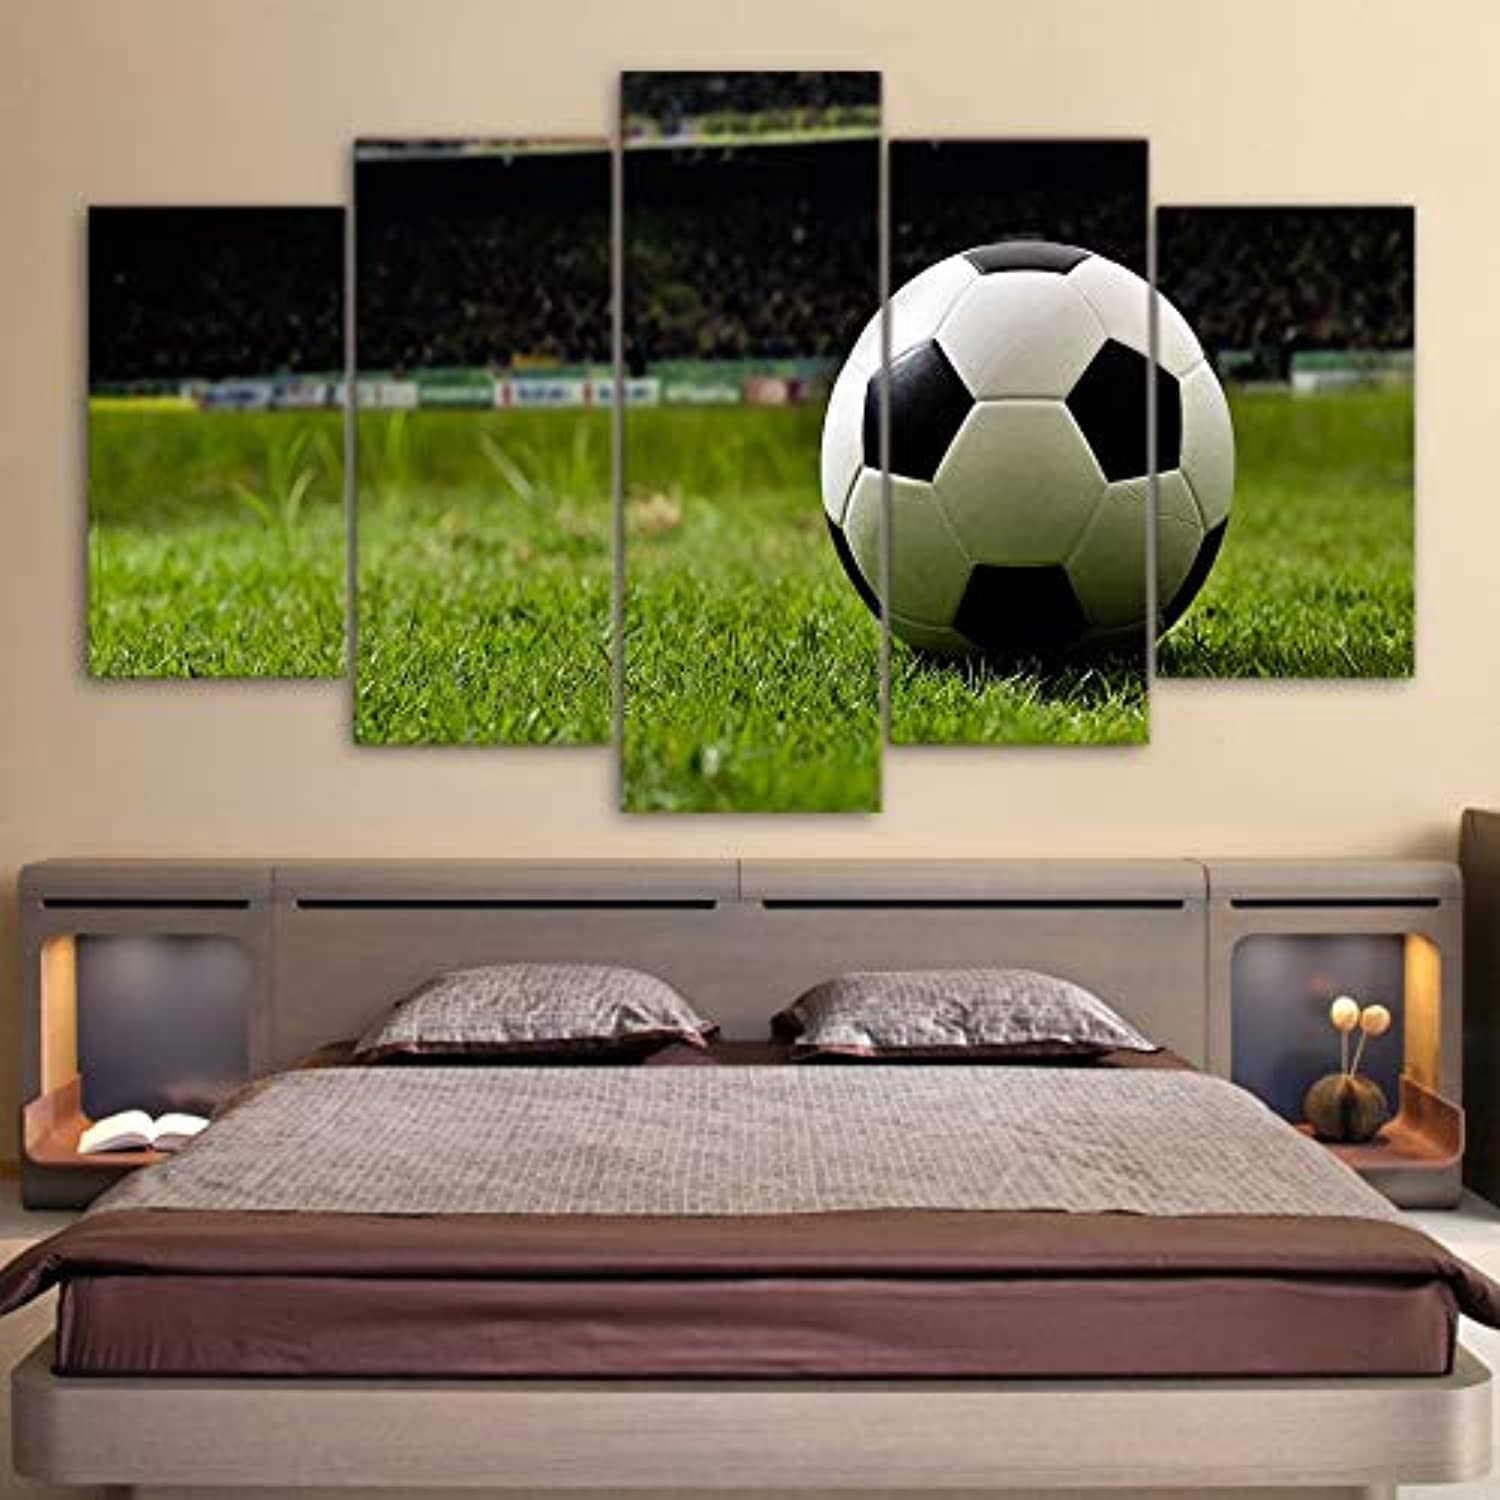 HD Printed Modern Canvas Living Room Picture 5 Panel Soccer Course Framework Wall Modular Poster Home Decor